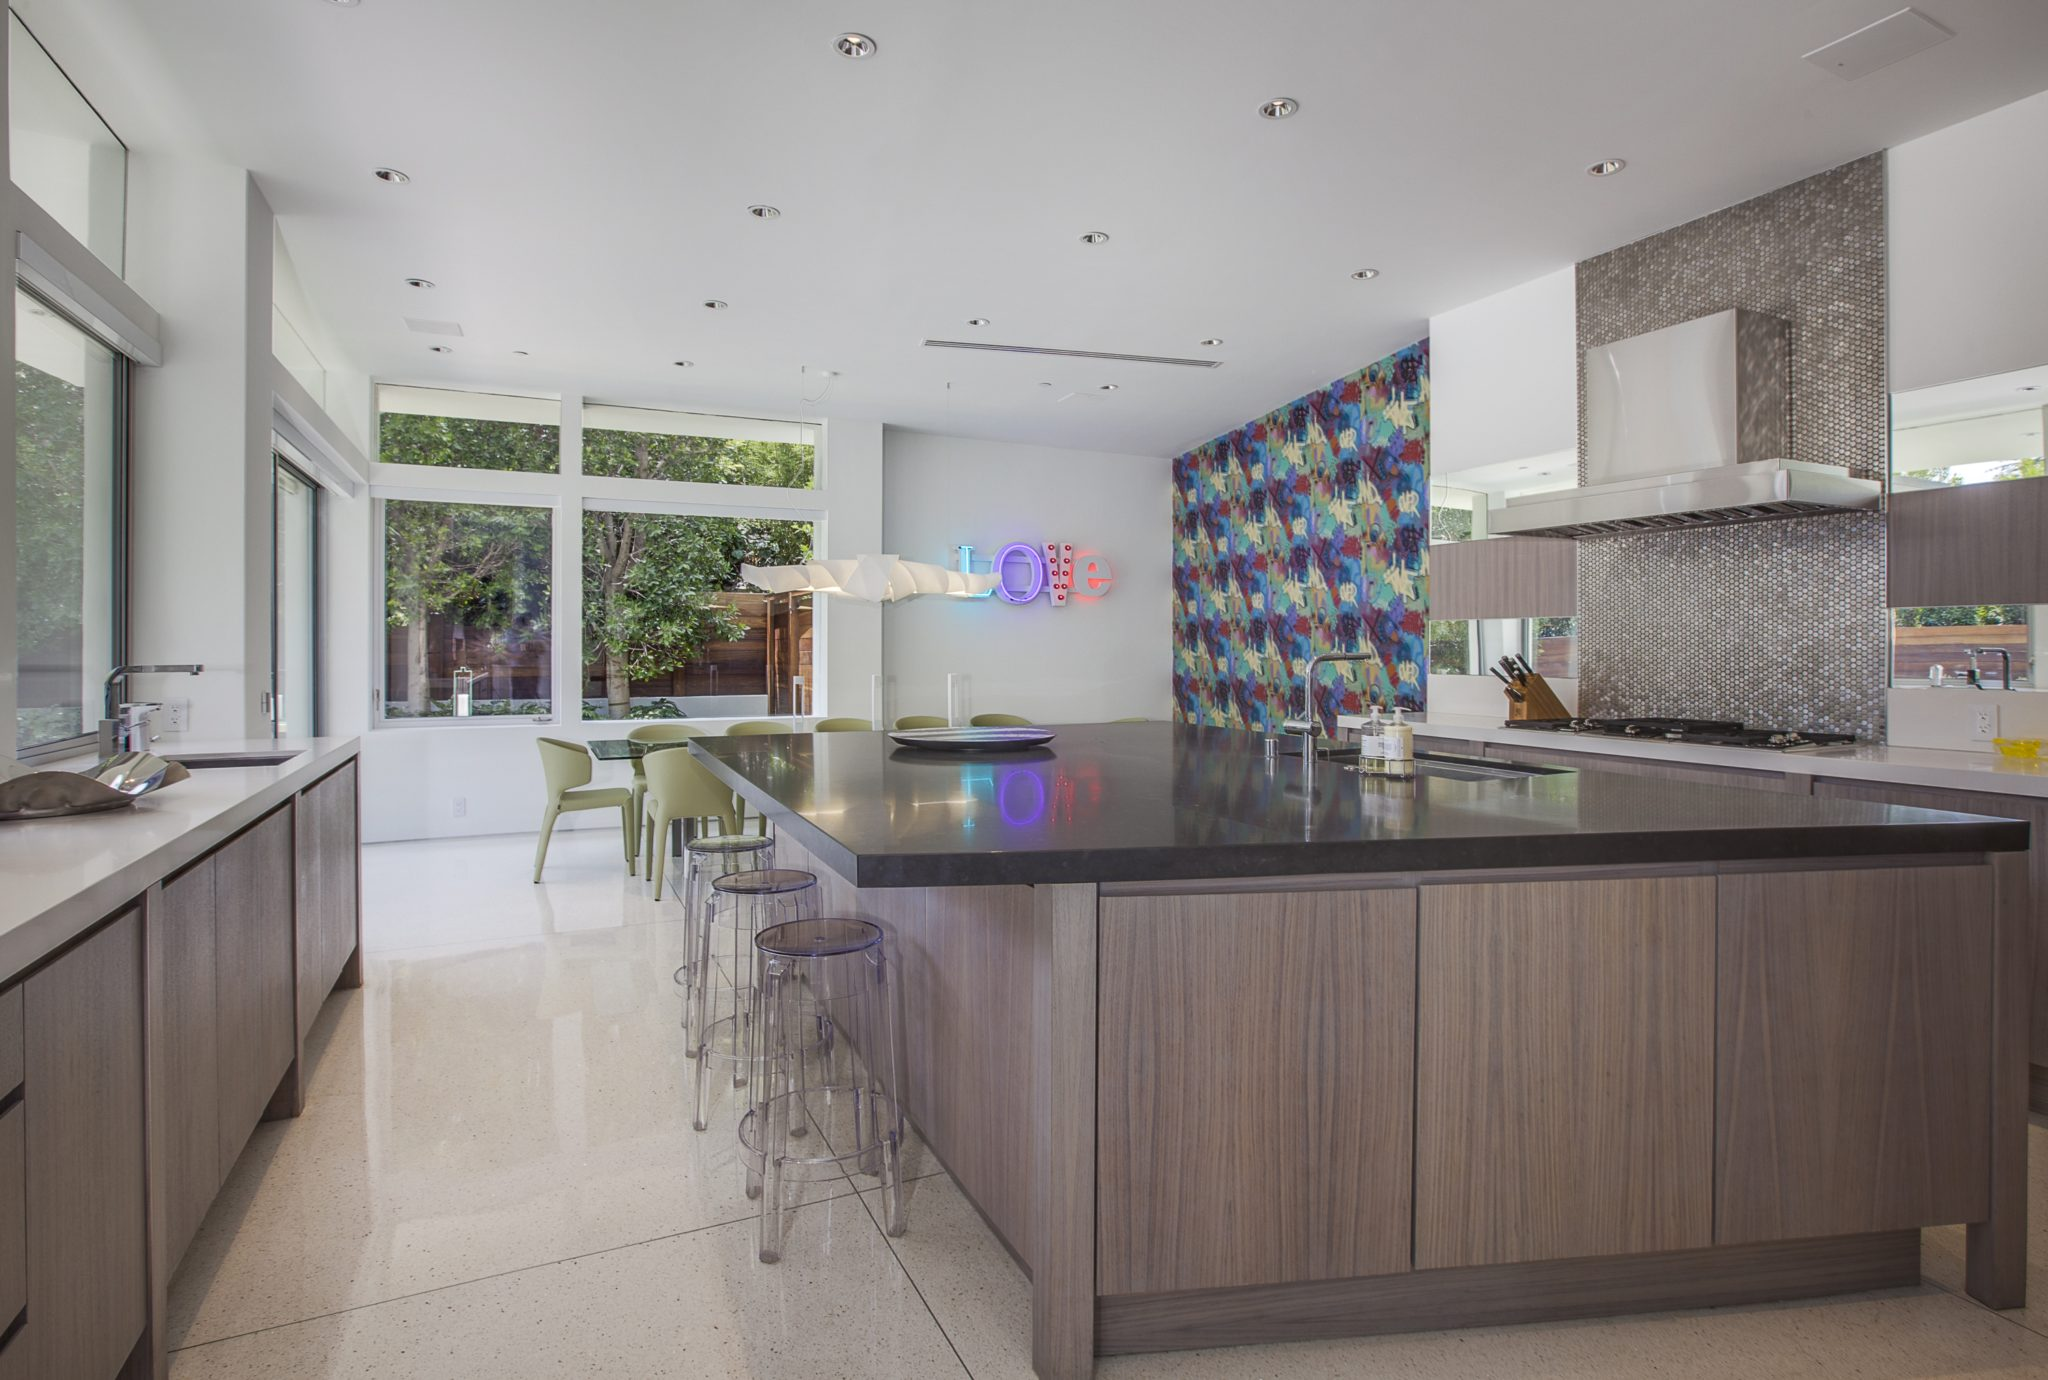 Beverly Hills kitchen by Crespo Design Group